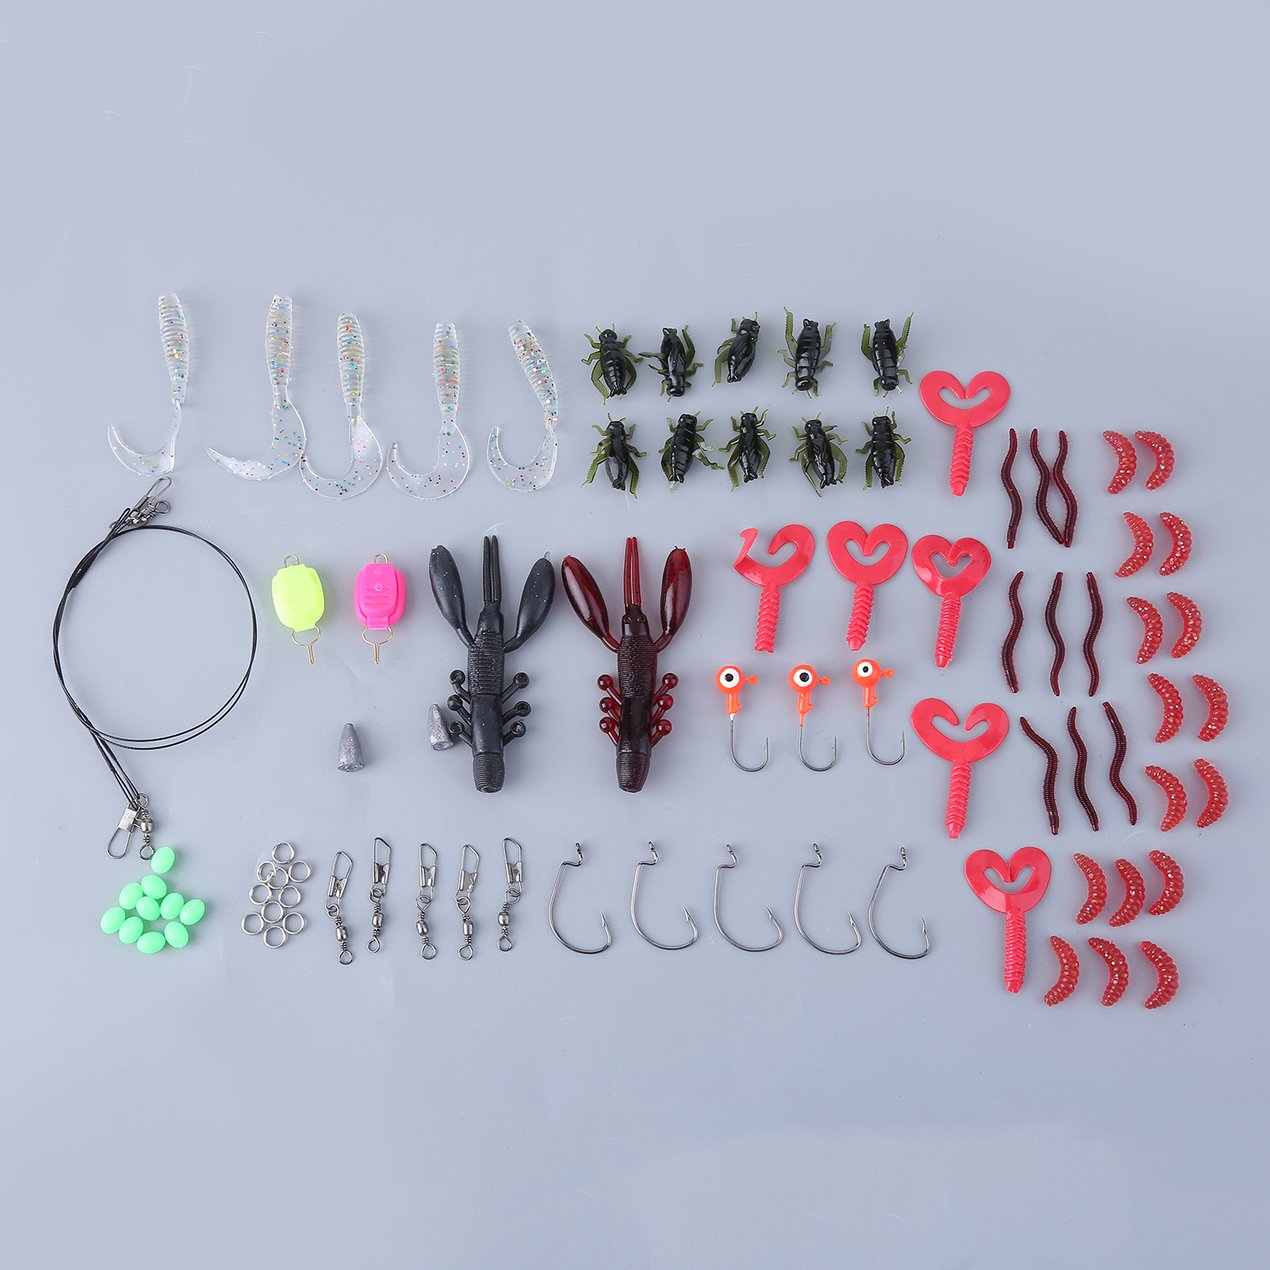 101pcs Fishing Lures Crankbaits Hooks Tackle Minnow Swim Baits With Box Set by